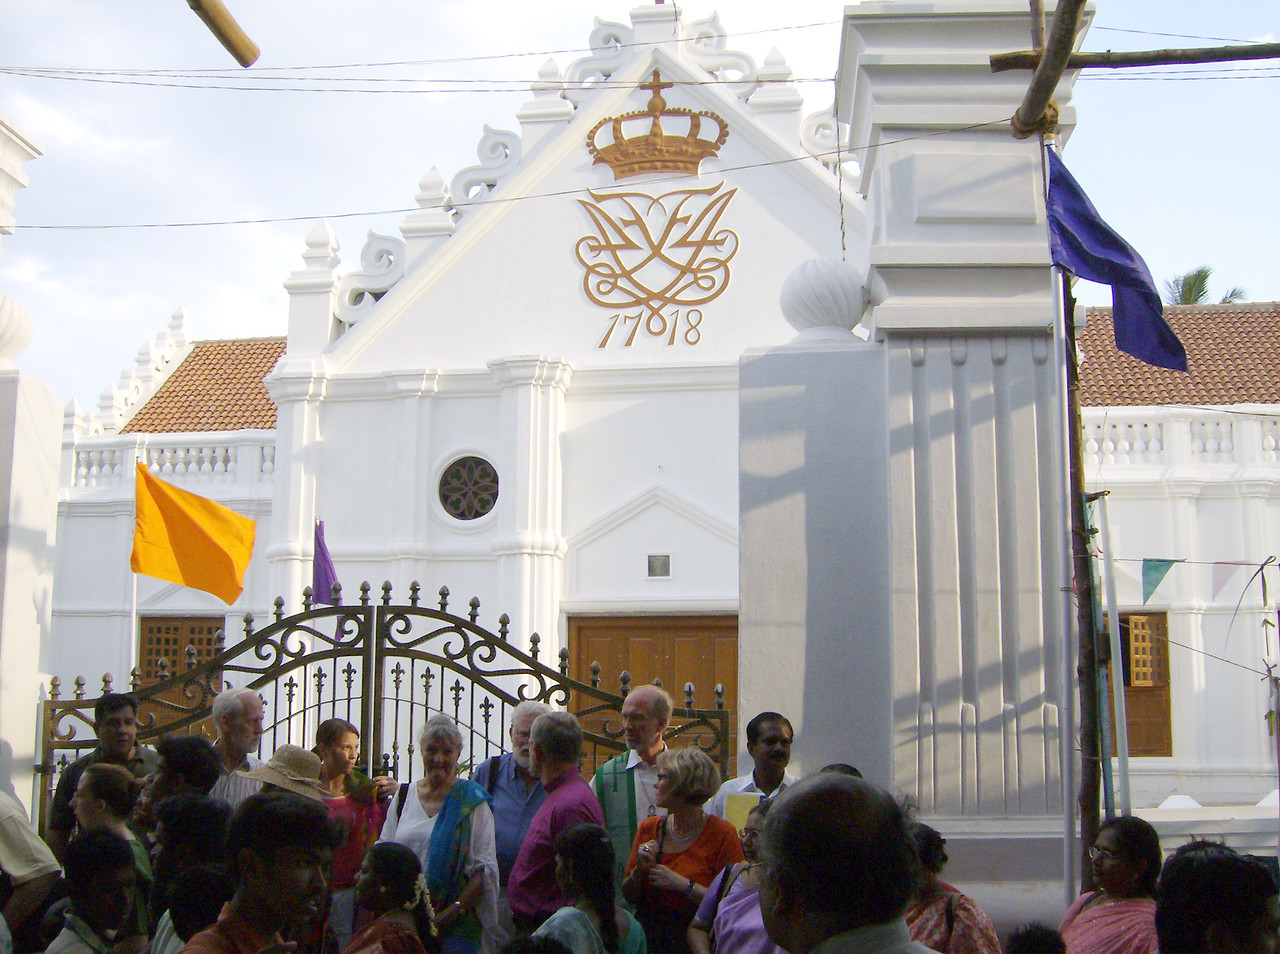 Weekend events showcased many buildings restored after the December 2004  tsunami, including New Jerusalem Church, which Ziegenbalg first dedicated  in 1718 and was rededicated July 8.  Ziegenbalg died in 1719 at the age  of 37, and his body was buried in the church.